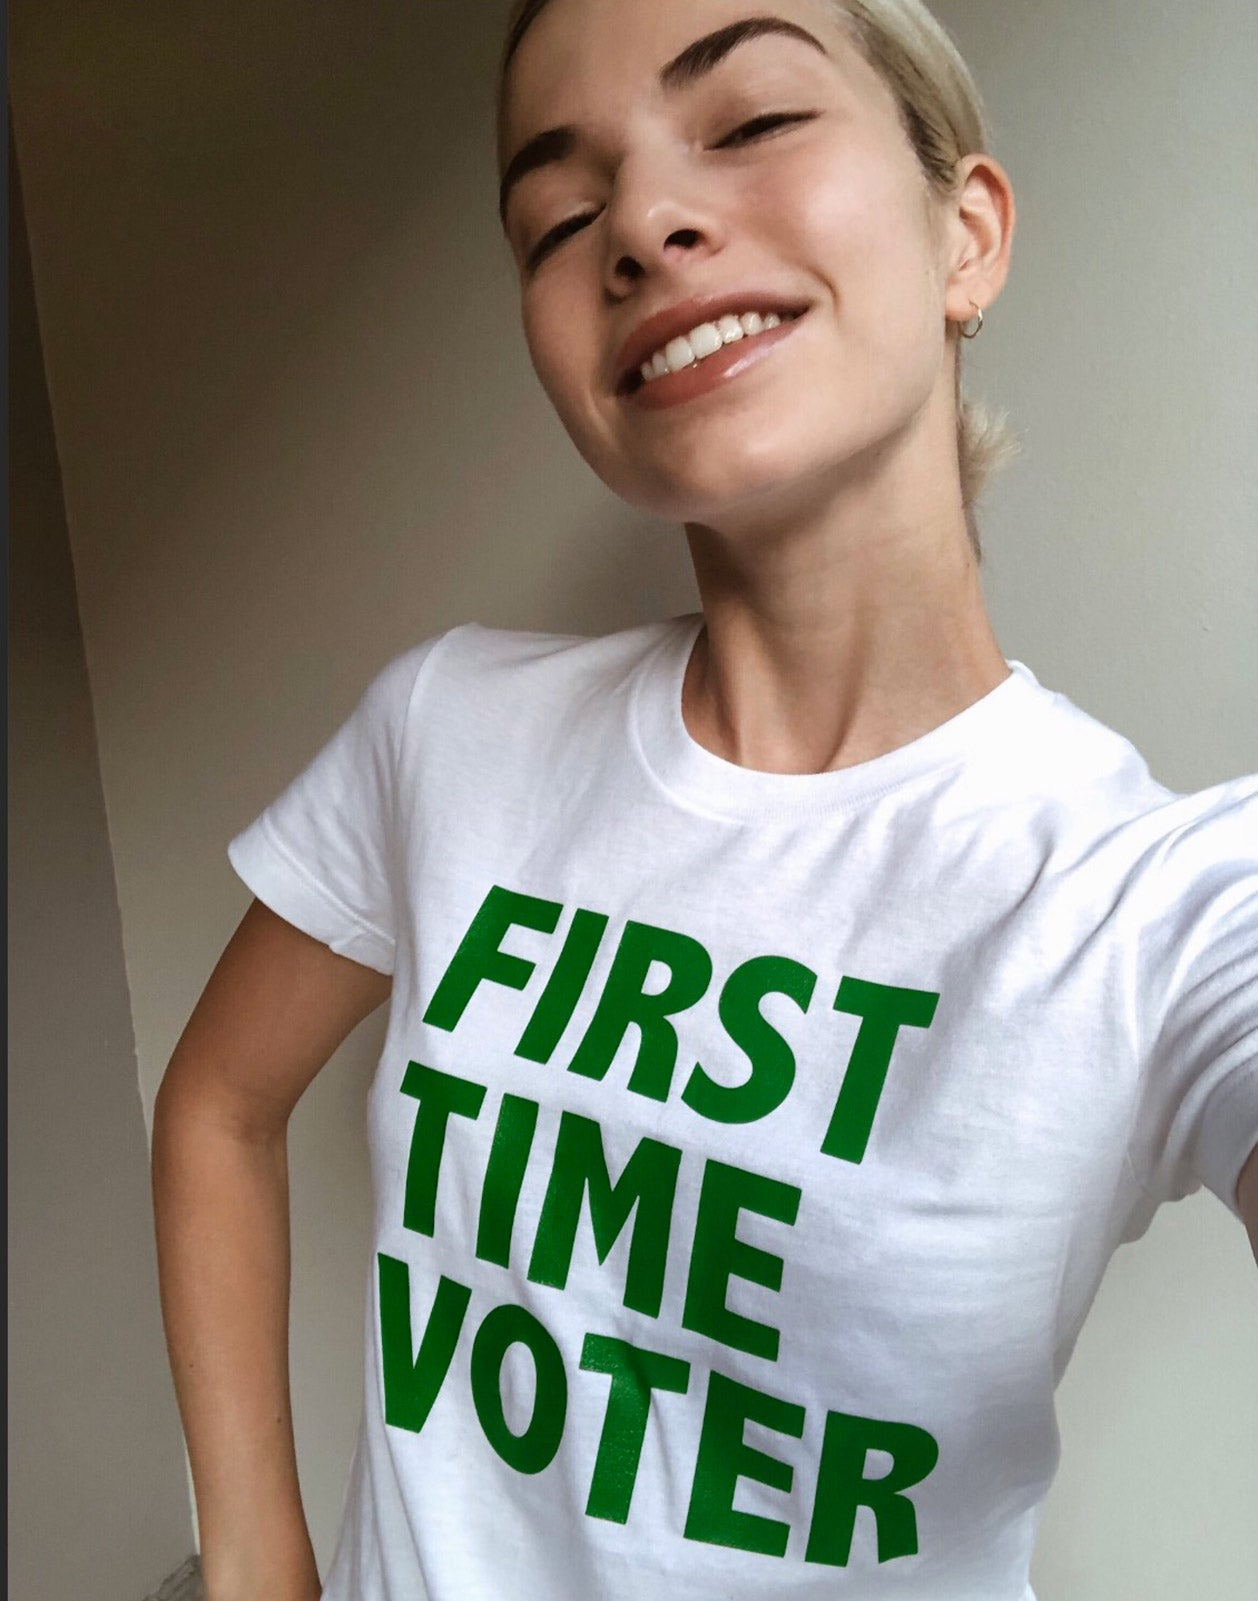 Selfie shot featuring the First Time Voter tee.